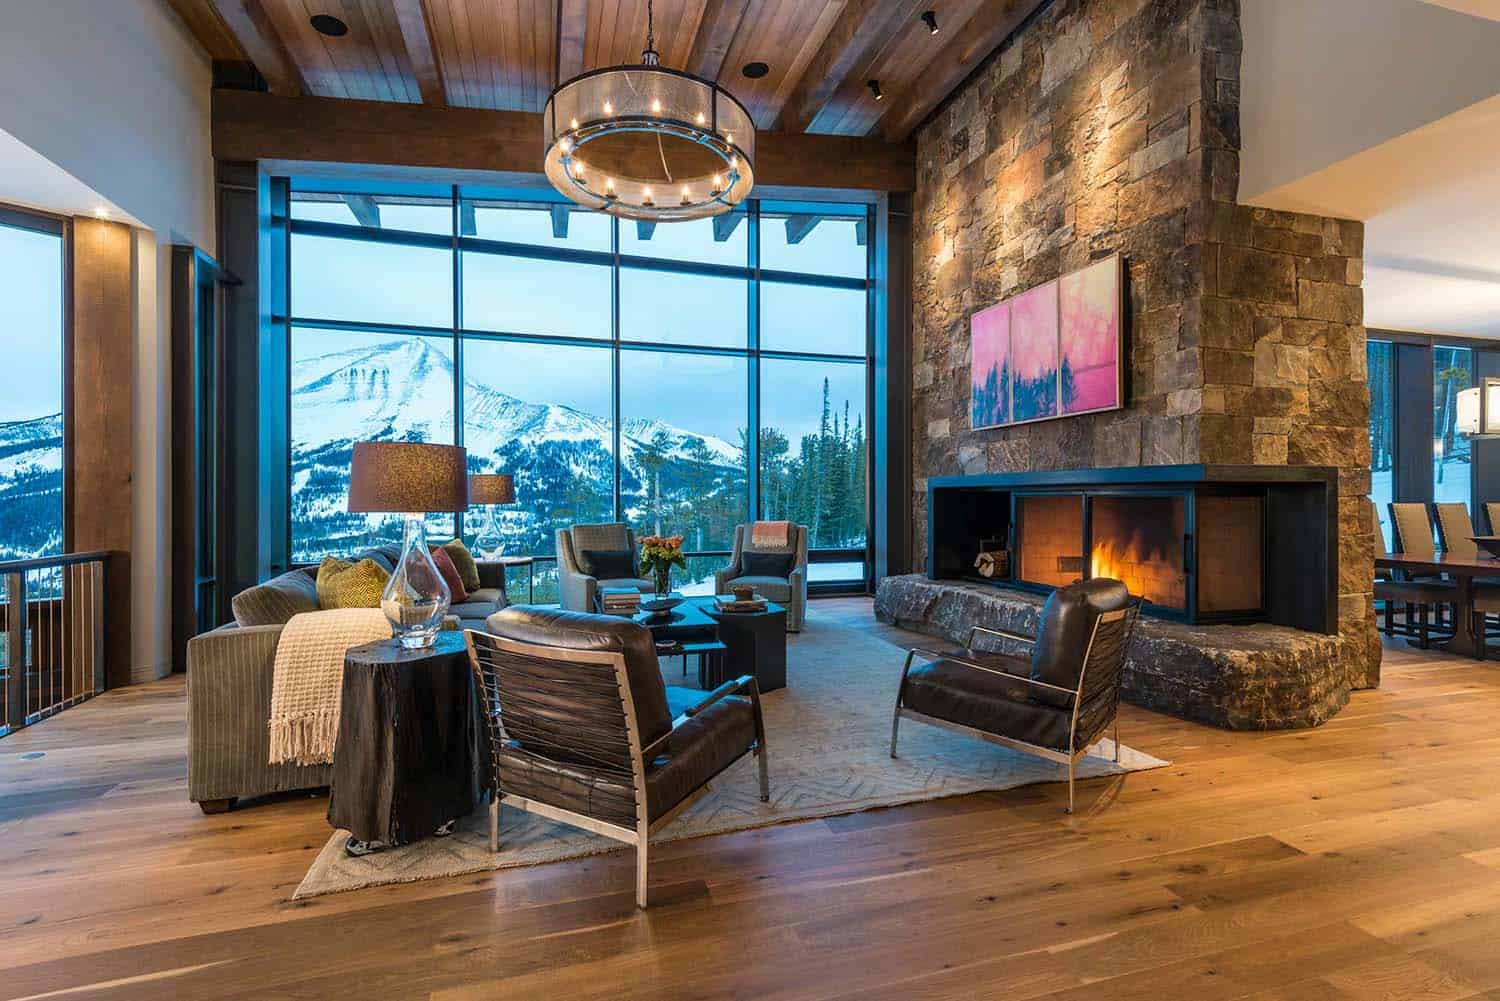 Contemporary Mountain Residence-Reid Smith Architects-04-1 Kindesign